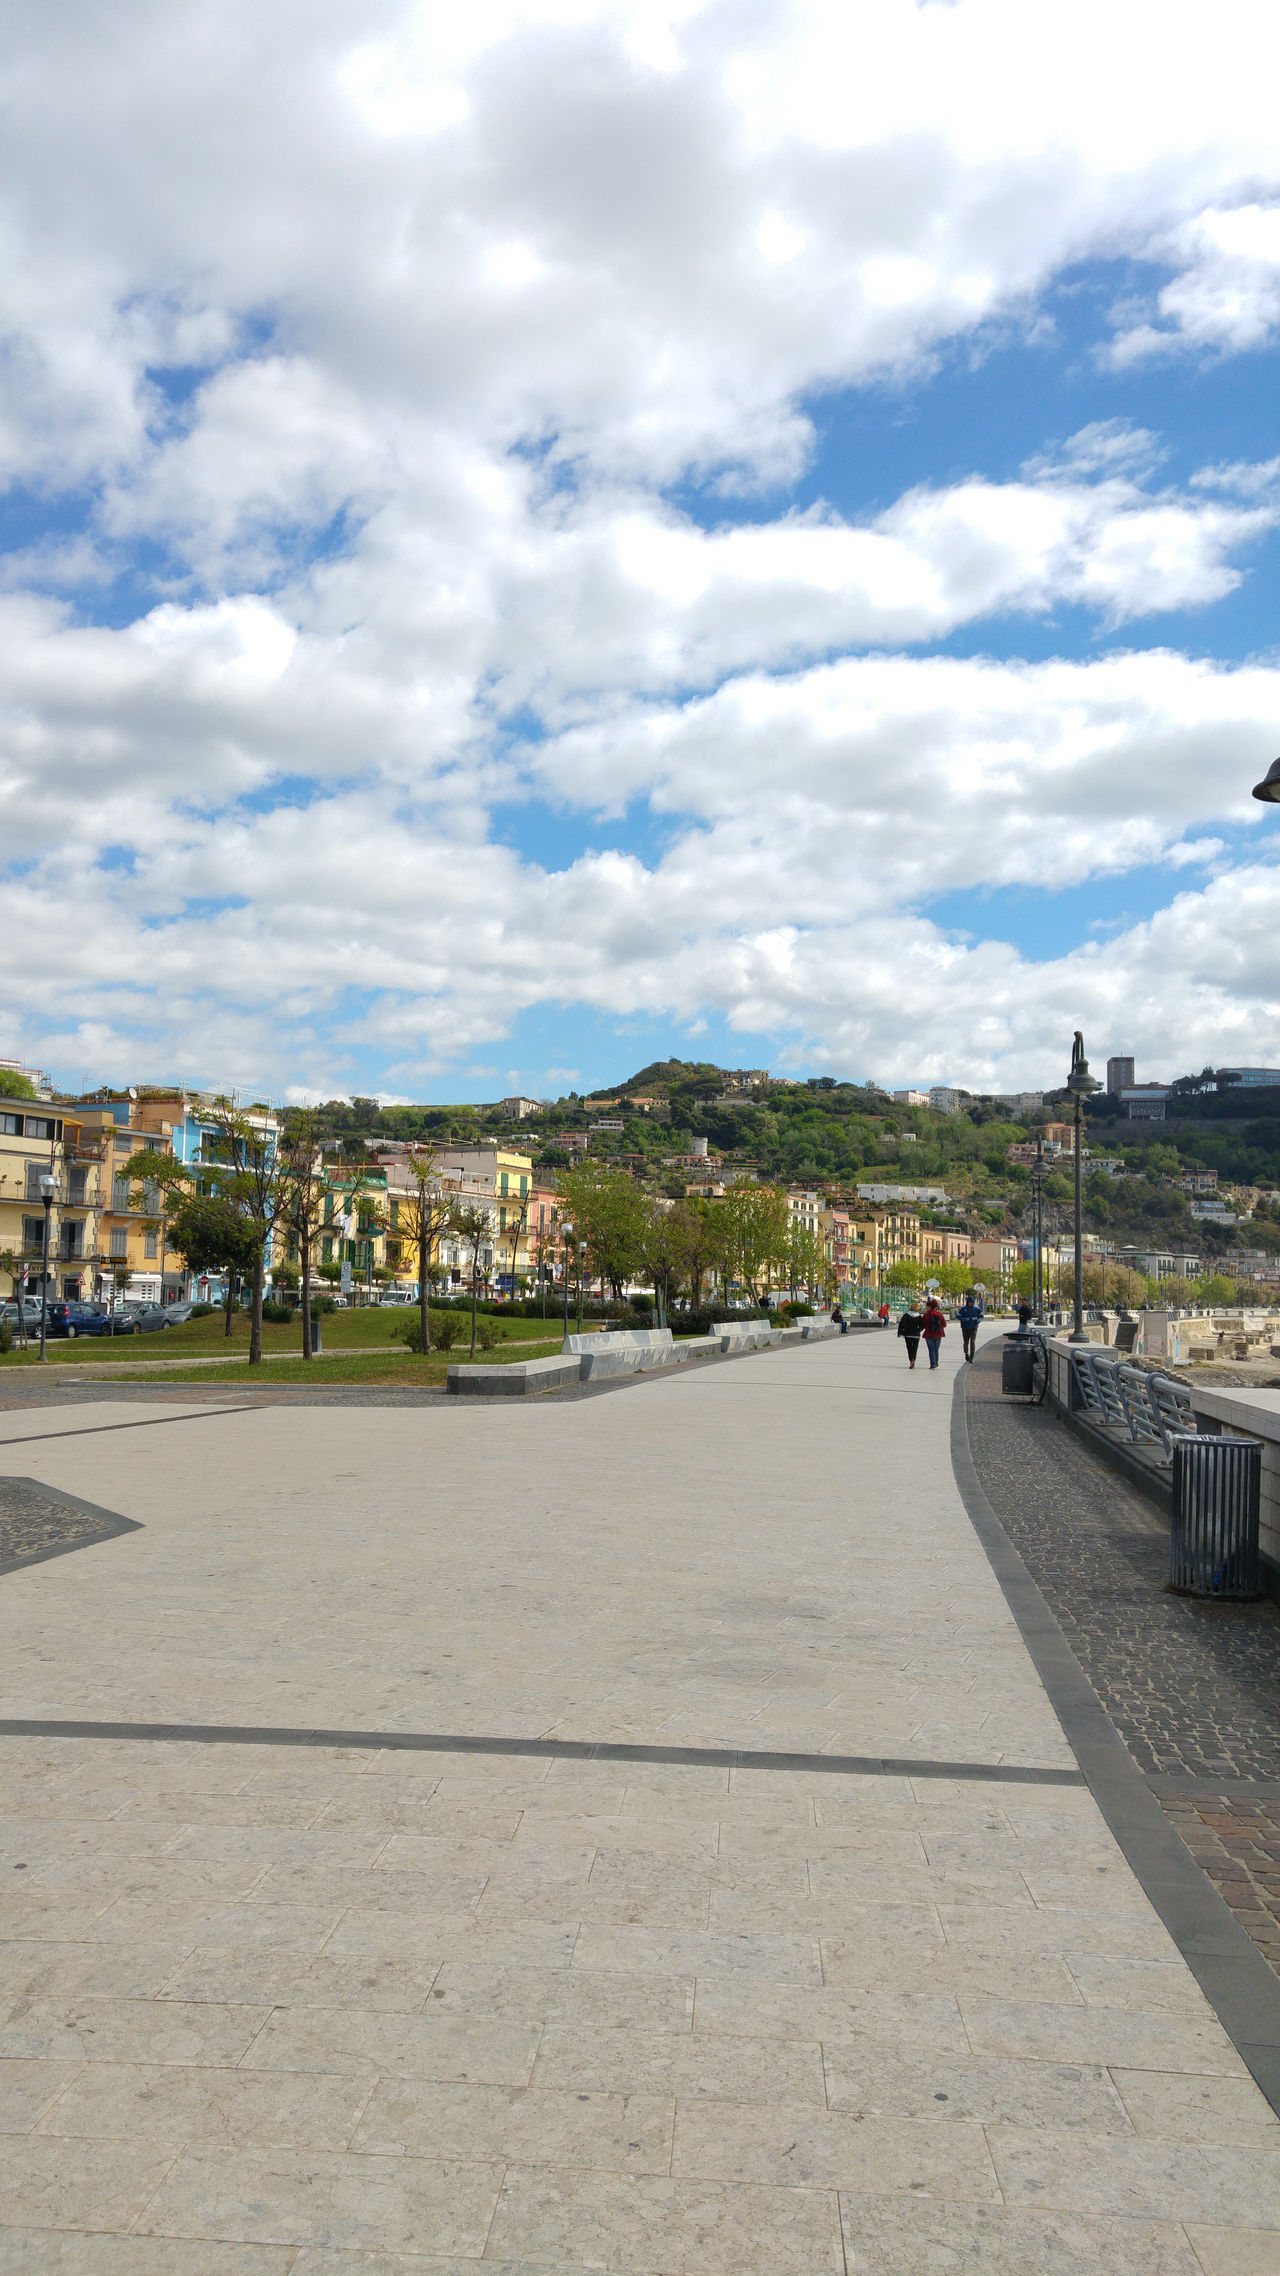 Sea promenade in Pozzuoli, bay of Naples, Italy Architecture Bay Of Naples Building Exterior Built Structure City Cityscape Cloud - Sky Day Naples, Italy Nature Outdoors Pozzuoli Real People Sky Tree